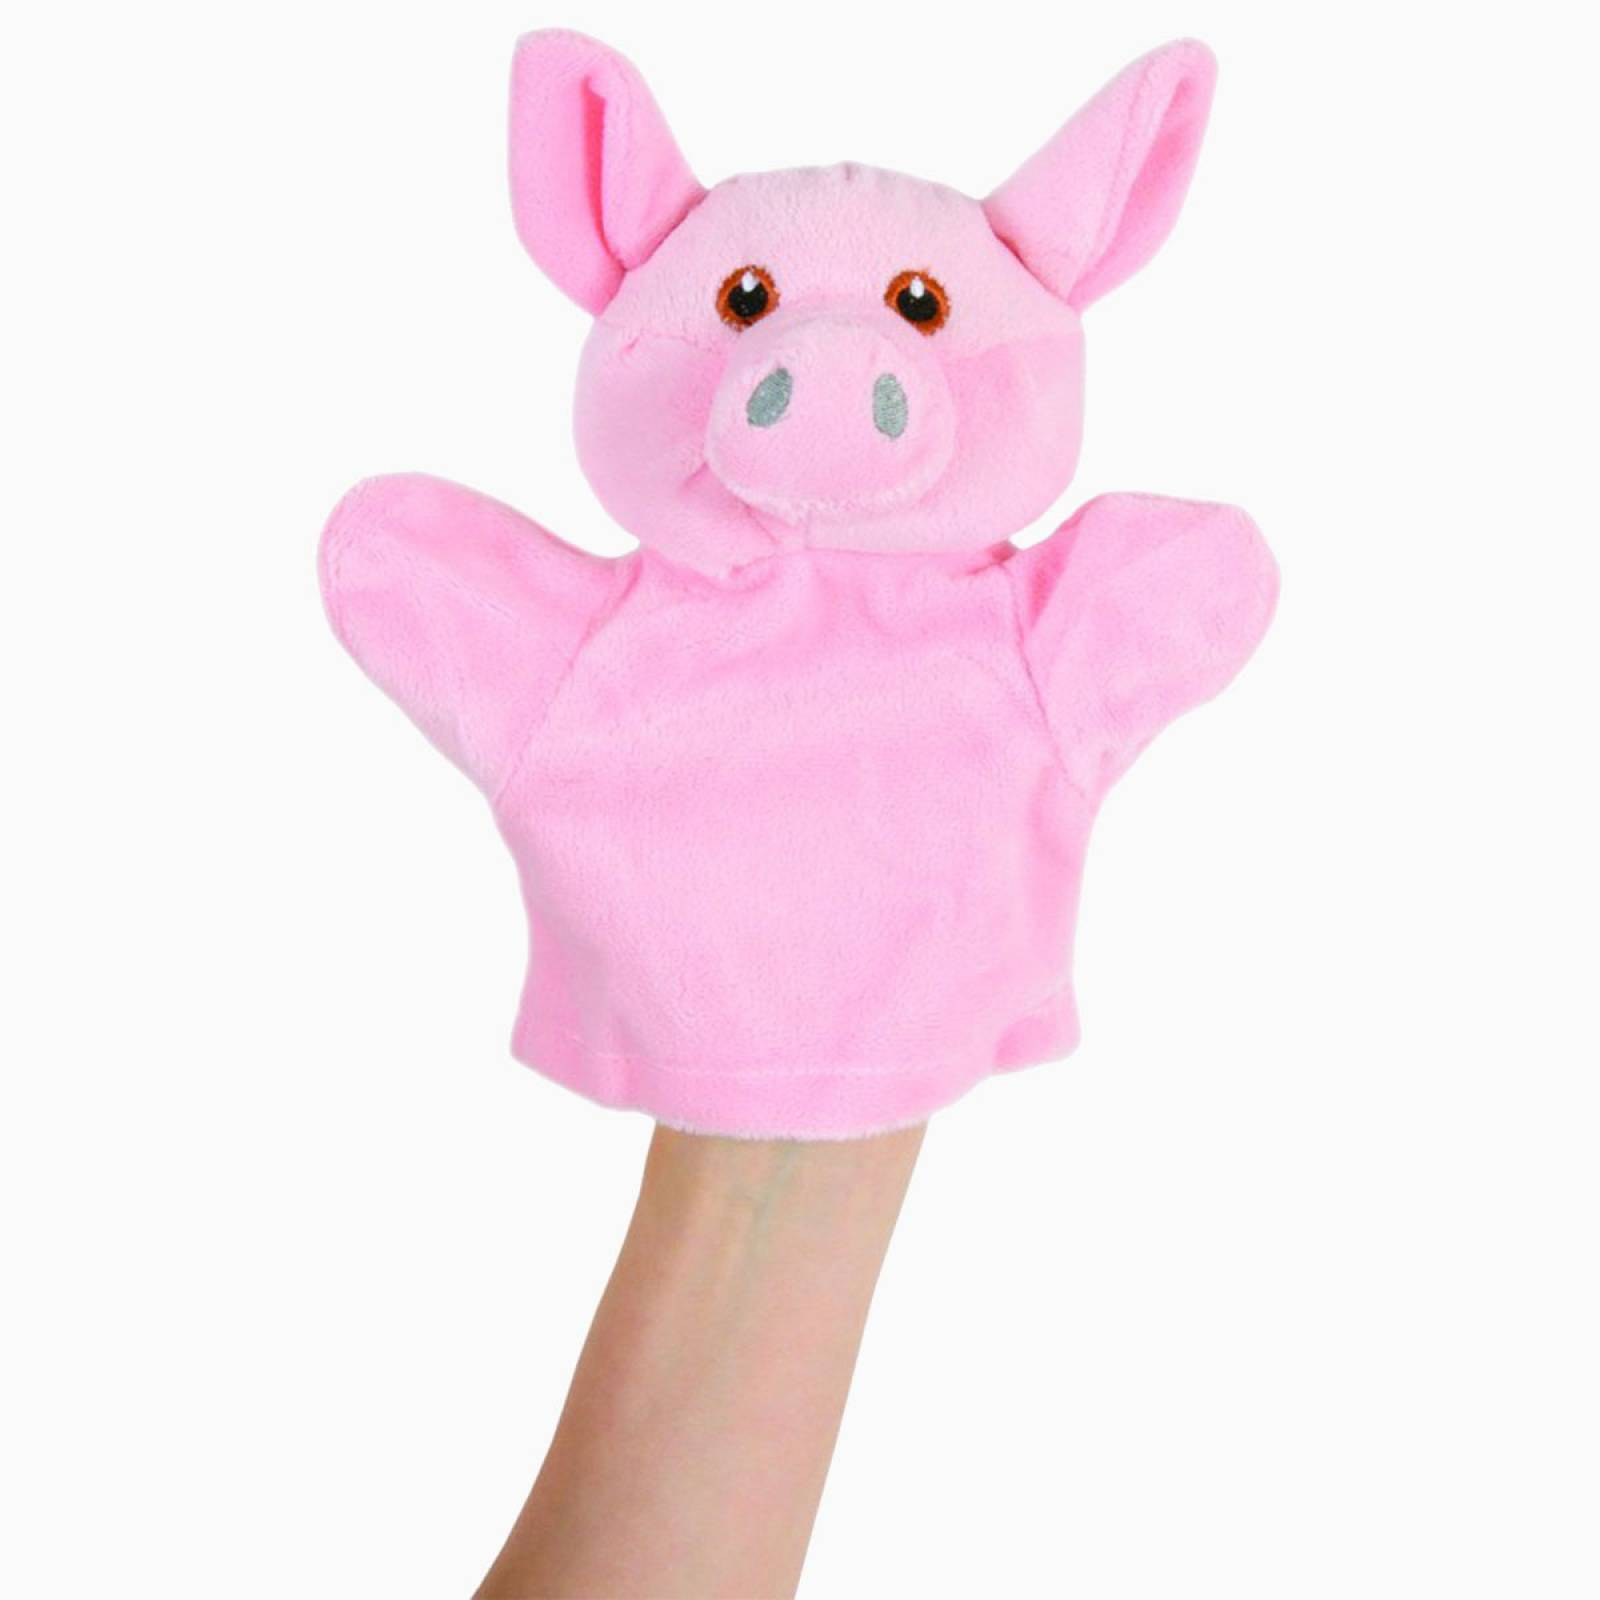 Pig - My First Puppet 0+ thumbnails